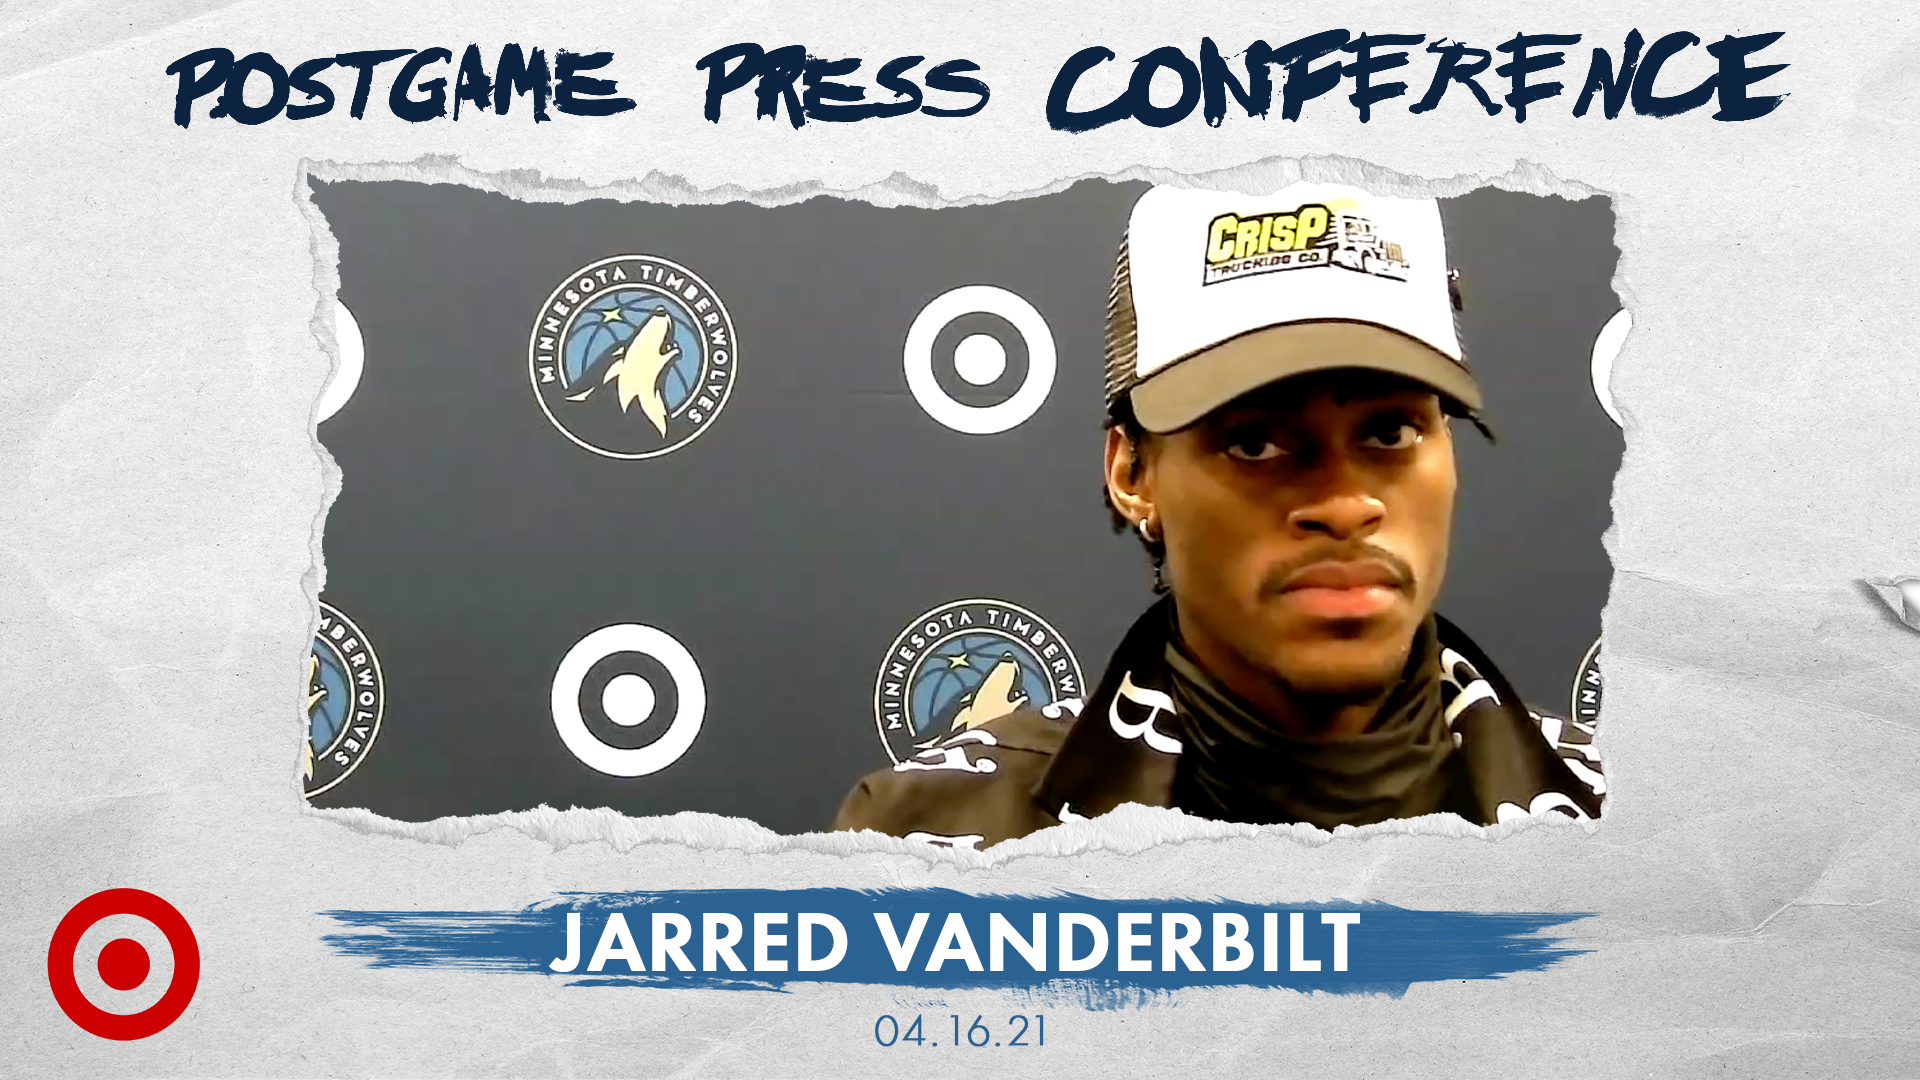 Jarred Vanderbilt Postgame Press Conference - April 16, 2021